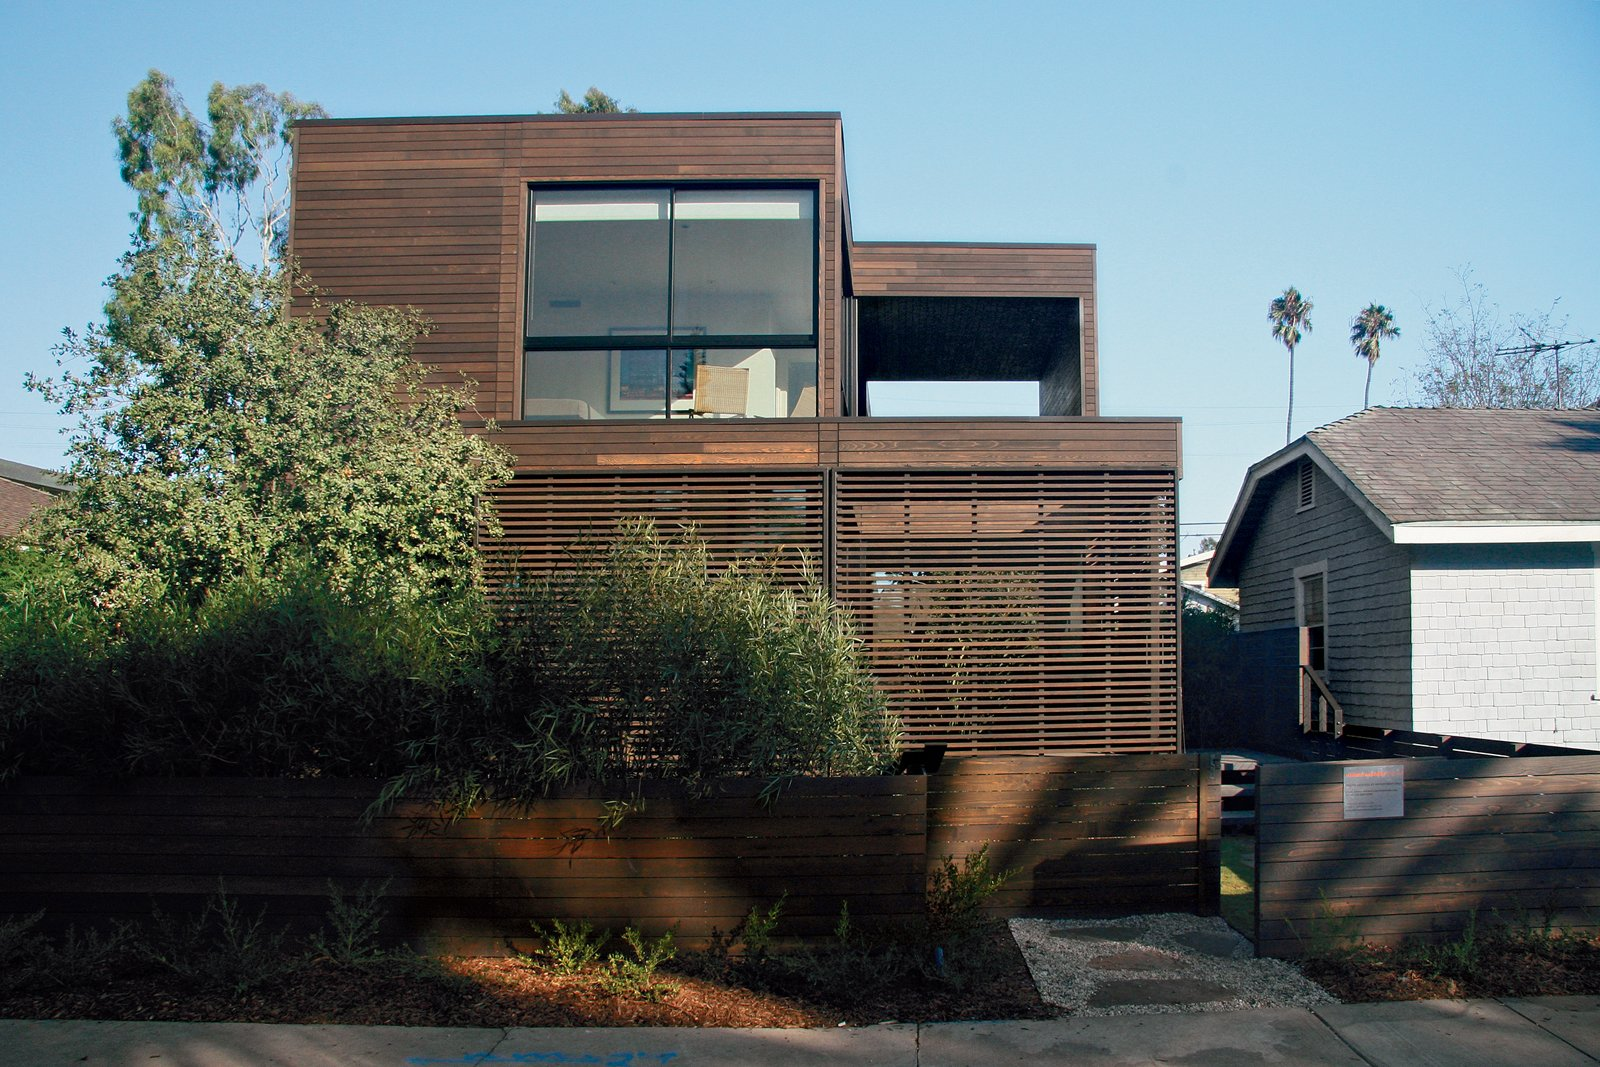 Wood cladding skins the facade of a completed Marmol Radziner Prefab home in Venice, California.  Marmol Radziner Prefab by Jessica Hundley from Pristine Prefabs from Marmol Radziner